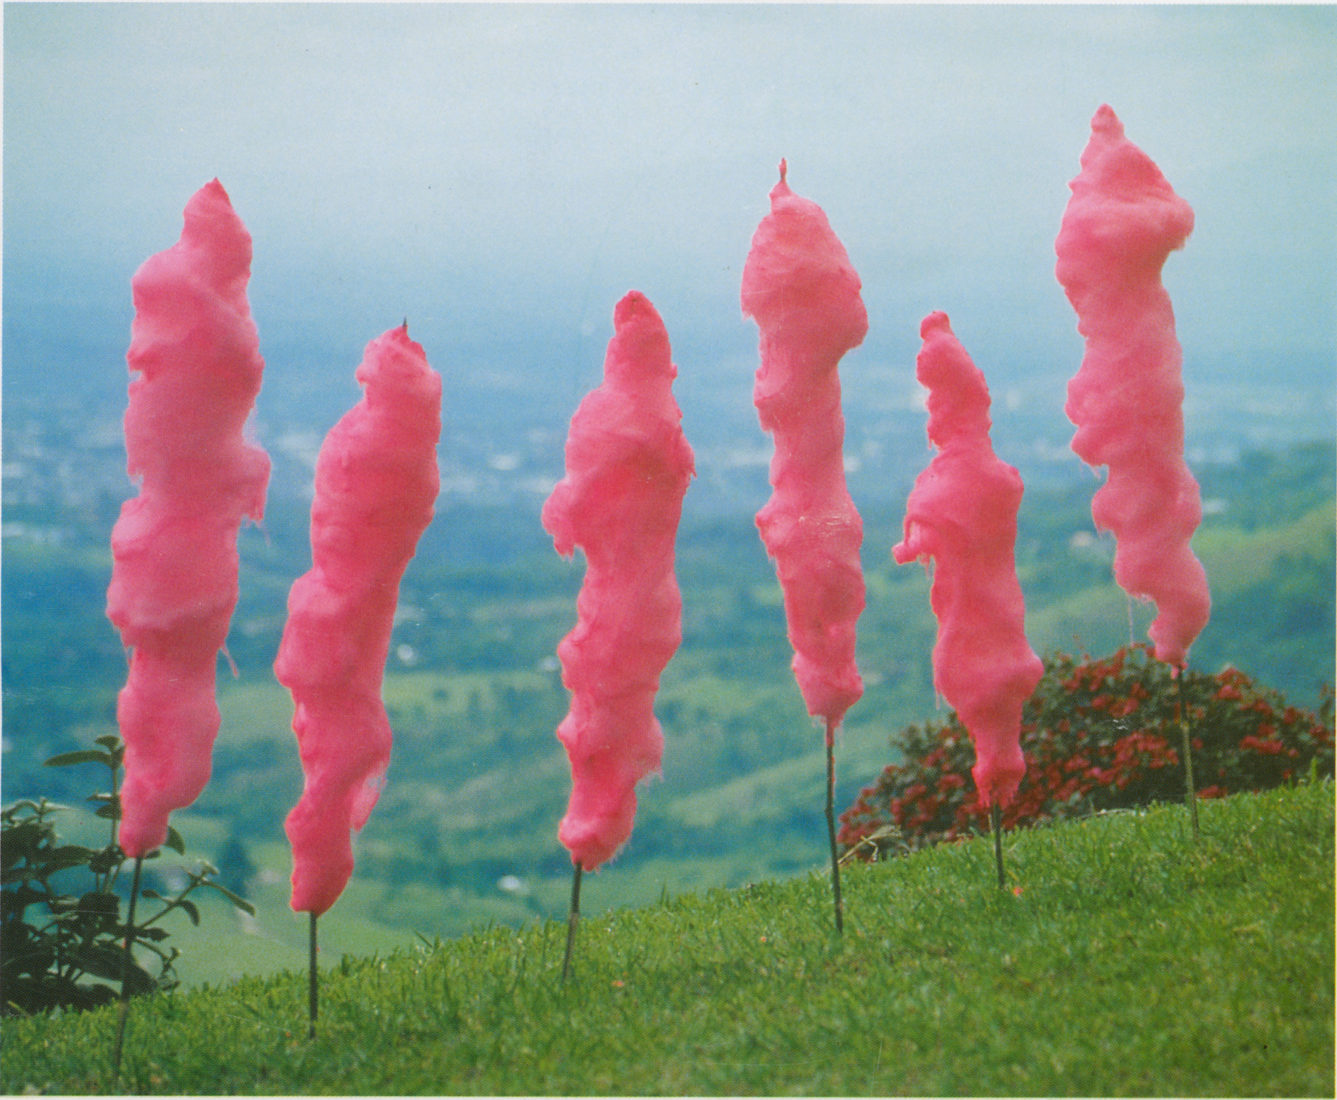 Adriana Arenas, Sweet Illusion, 1999